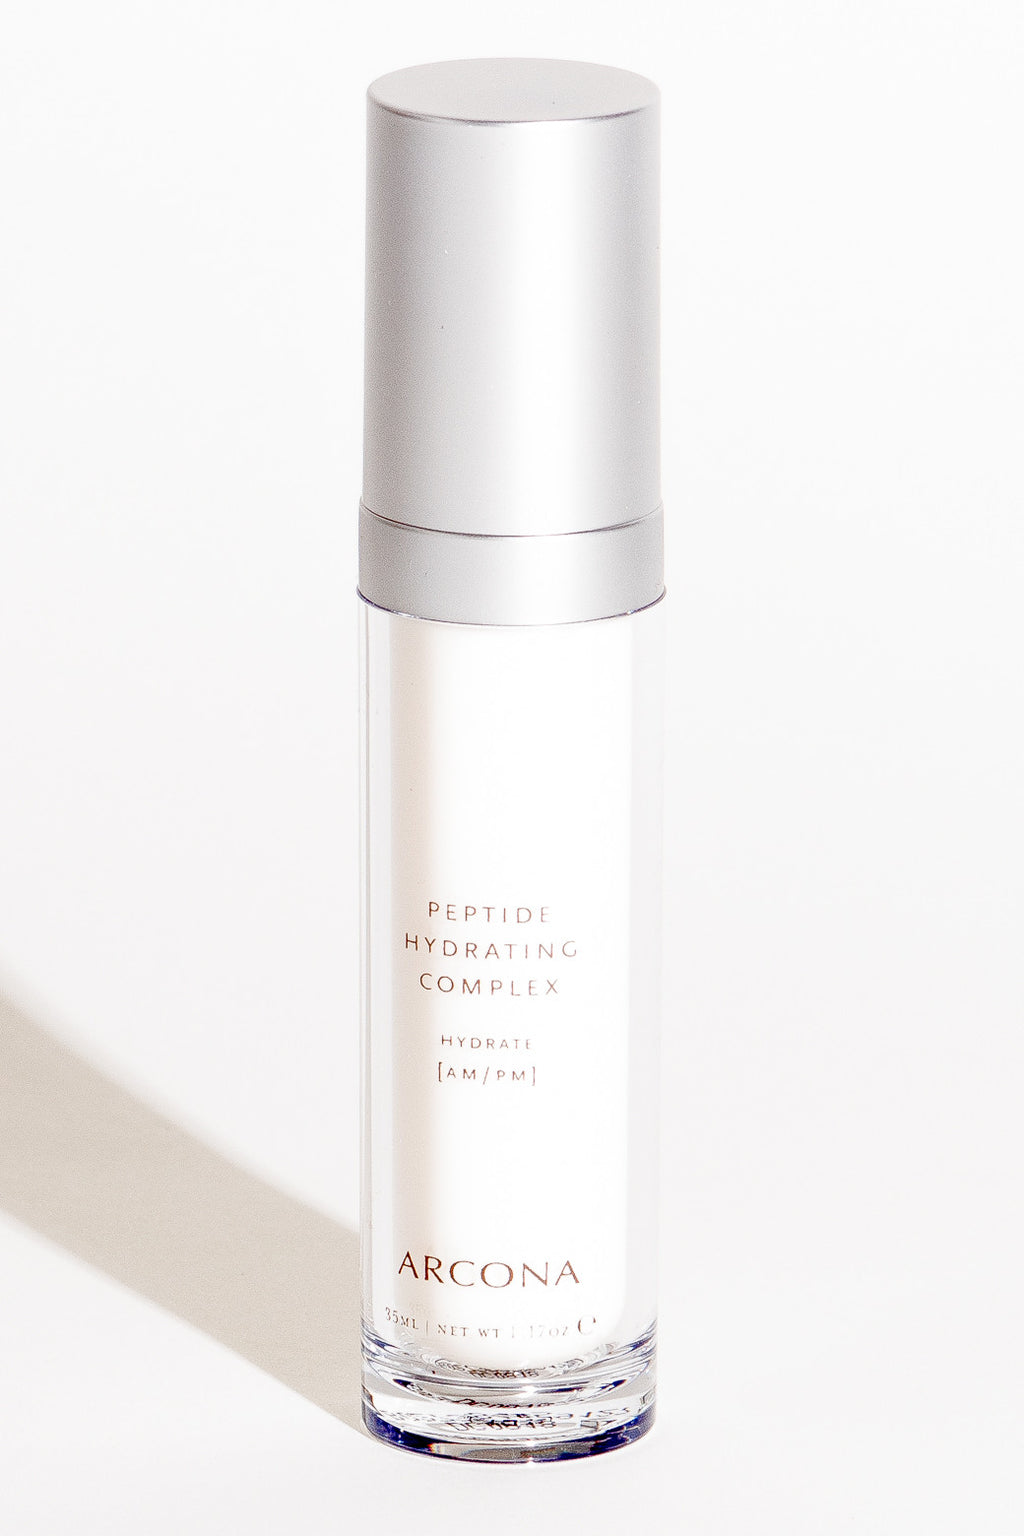 Arcona Peptide Hydrating Complex